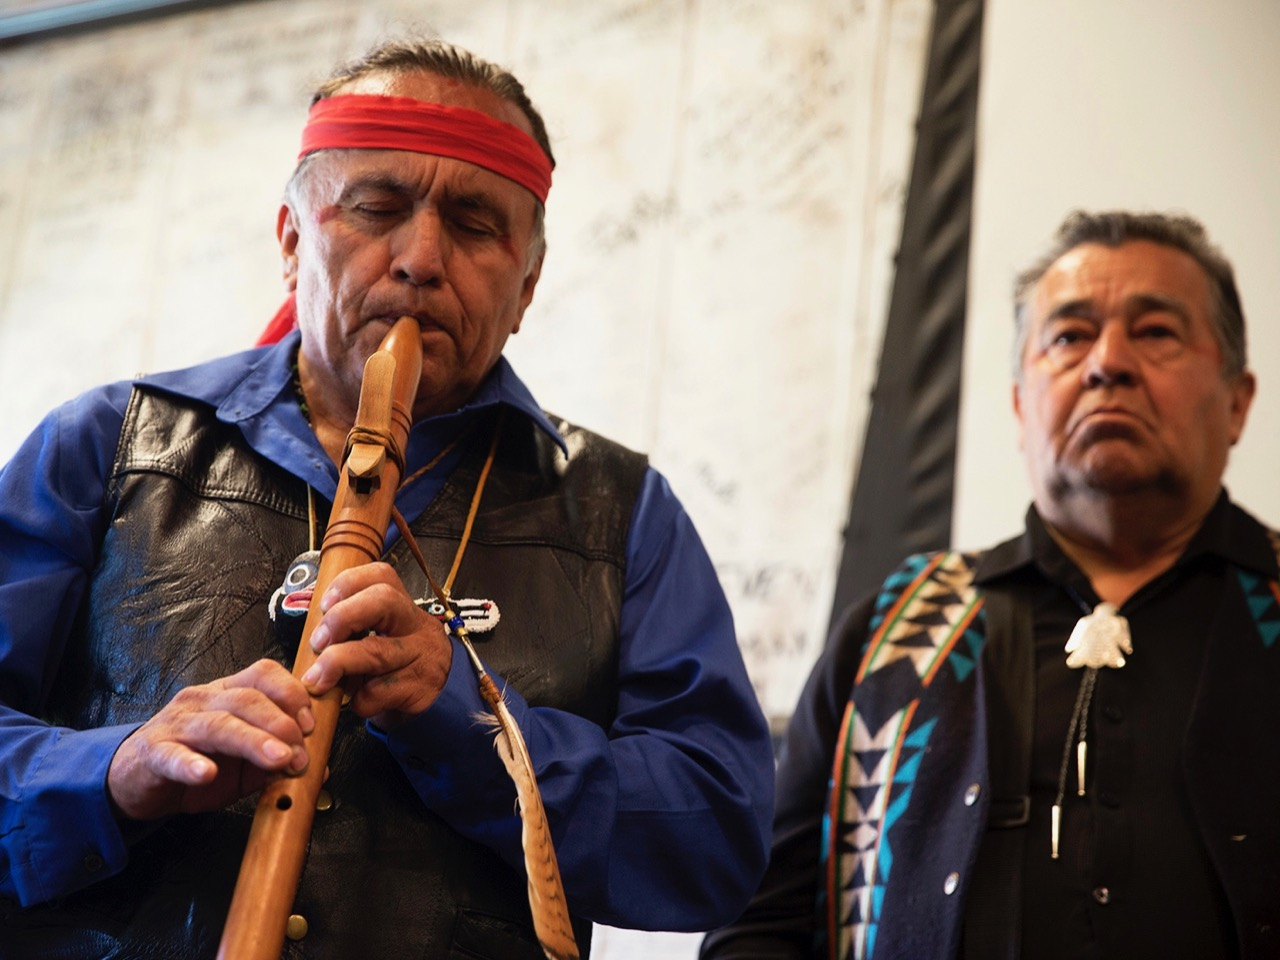 Religion News Service: Lummi Nation fights for return of relative